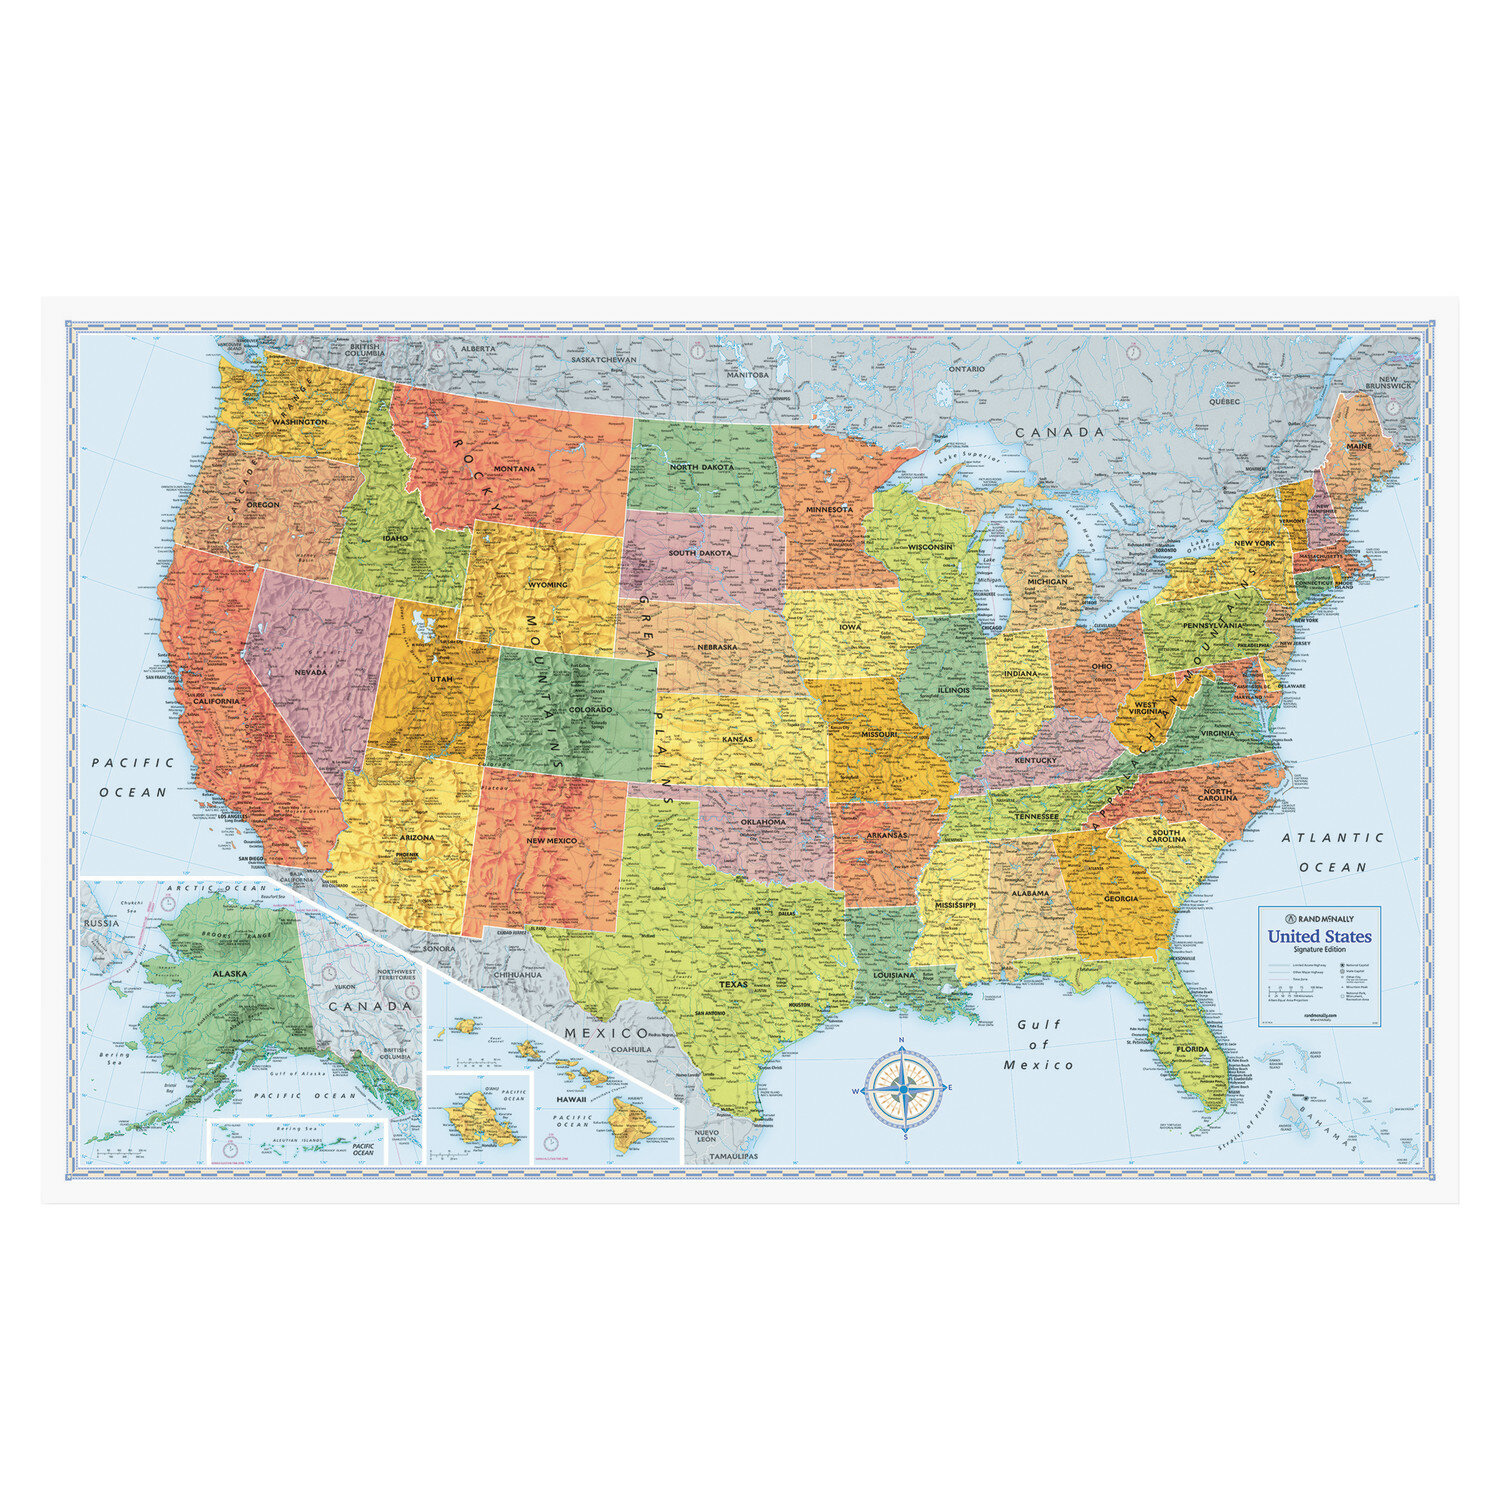 Rand Mcnally M-Series Full-Color Laminated United States Wall Map, 50 X 32